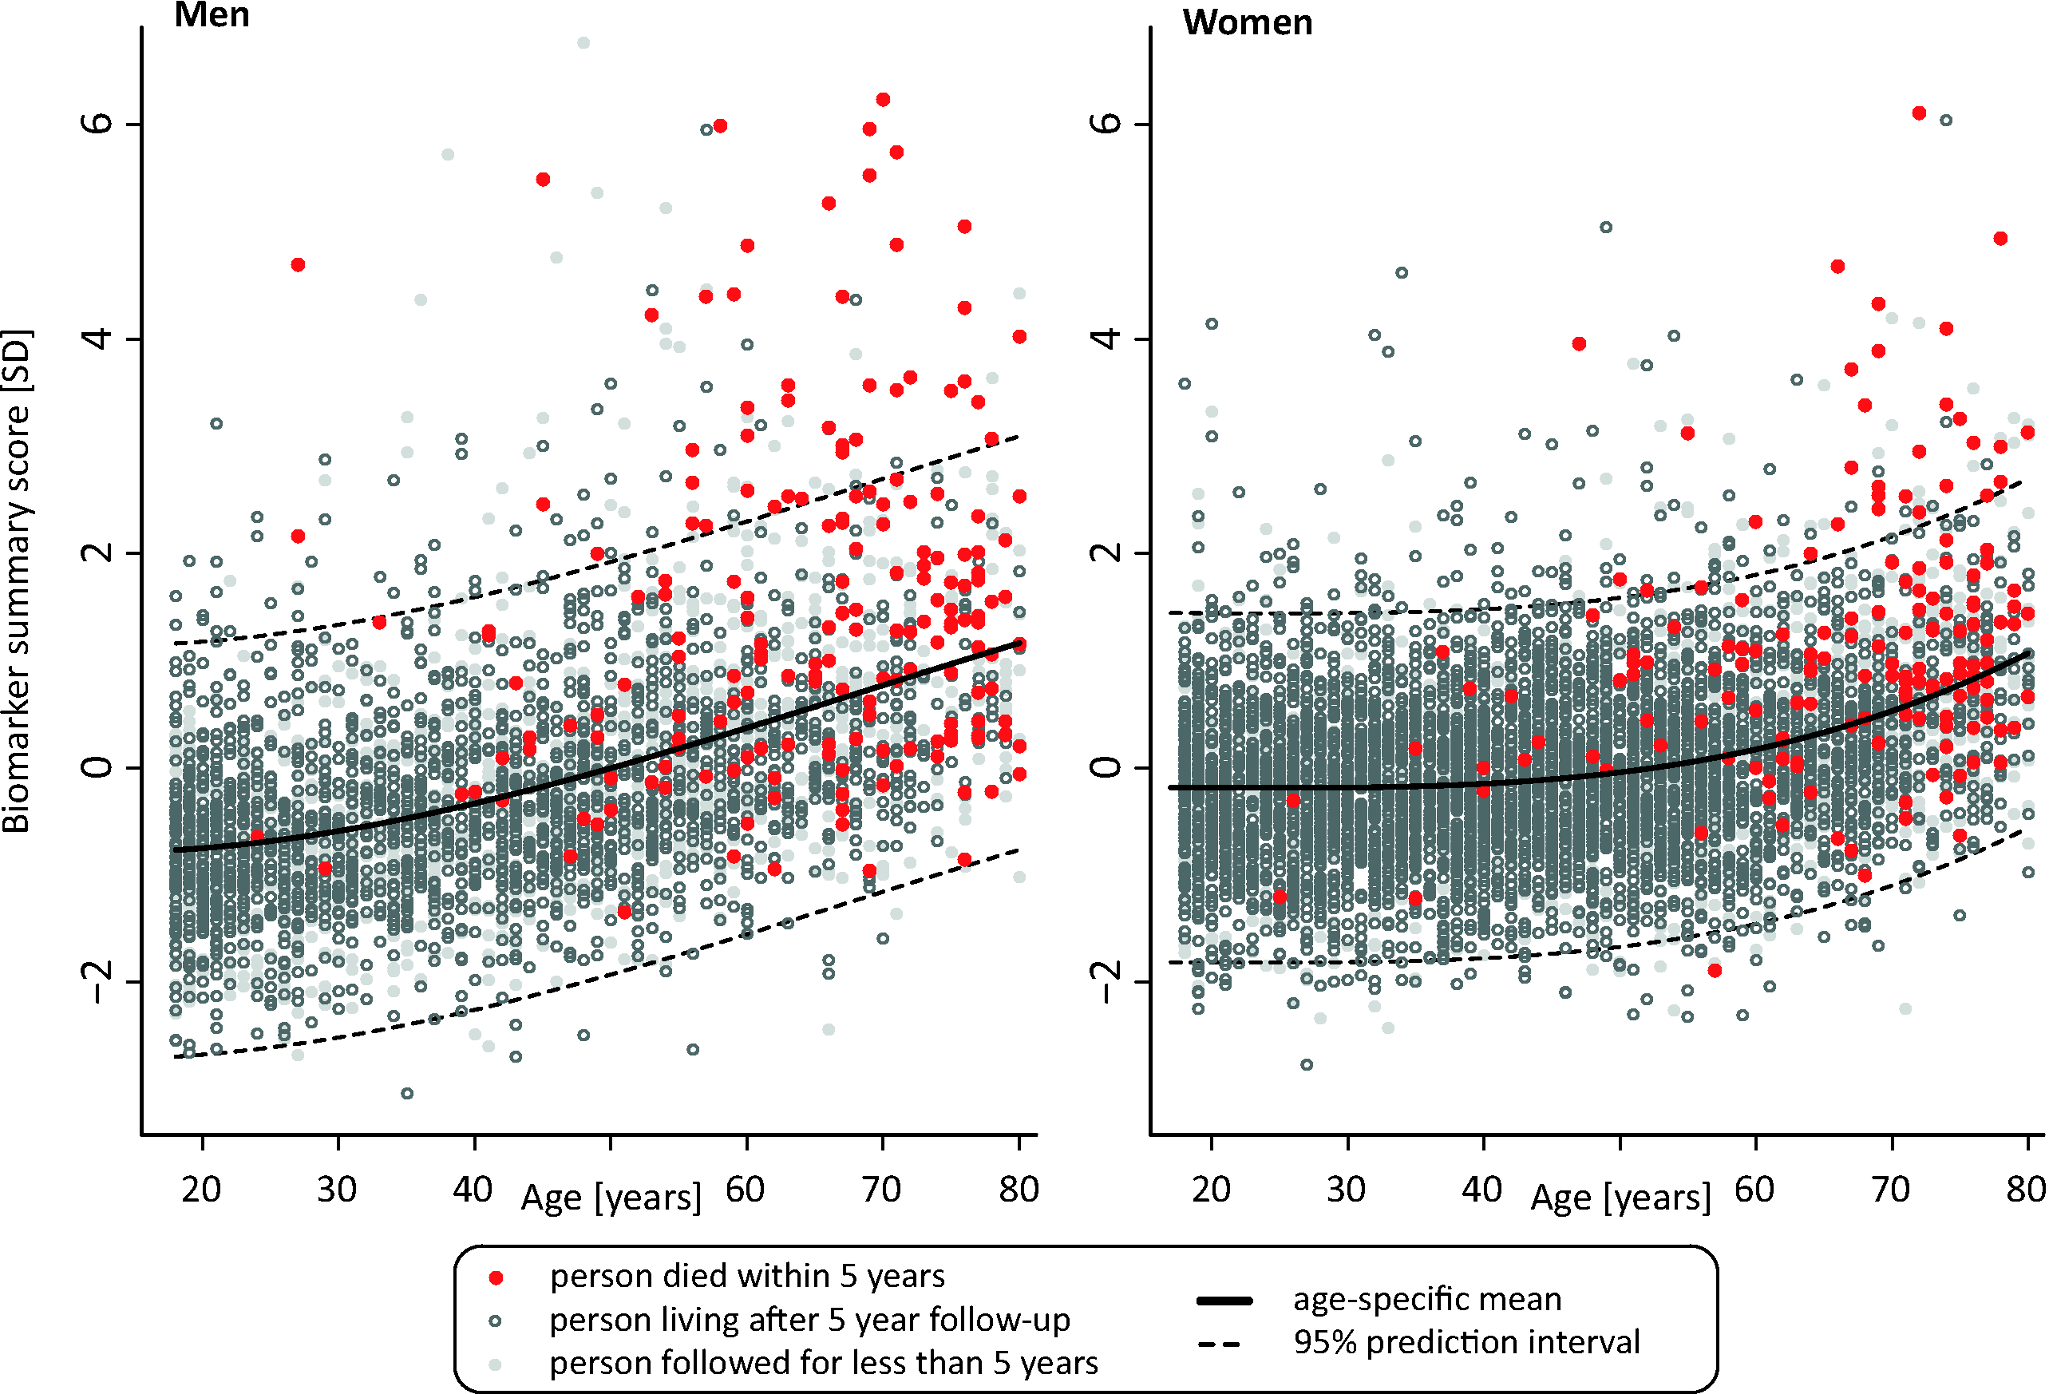 Scatter plot of age versus biomarker summary score for men and women from the Estonian Biobank cohort.